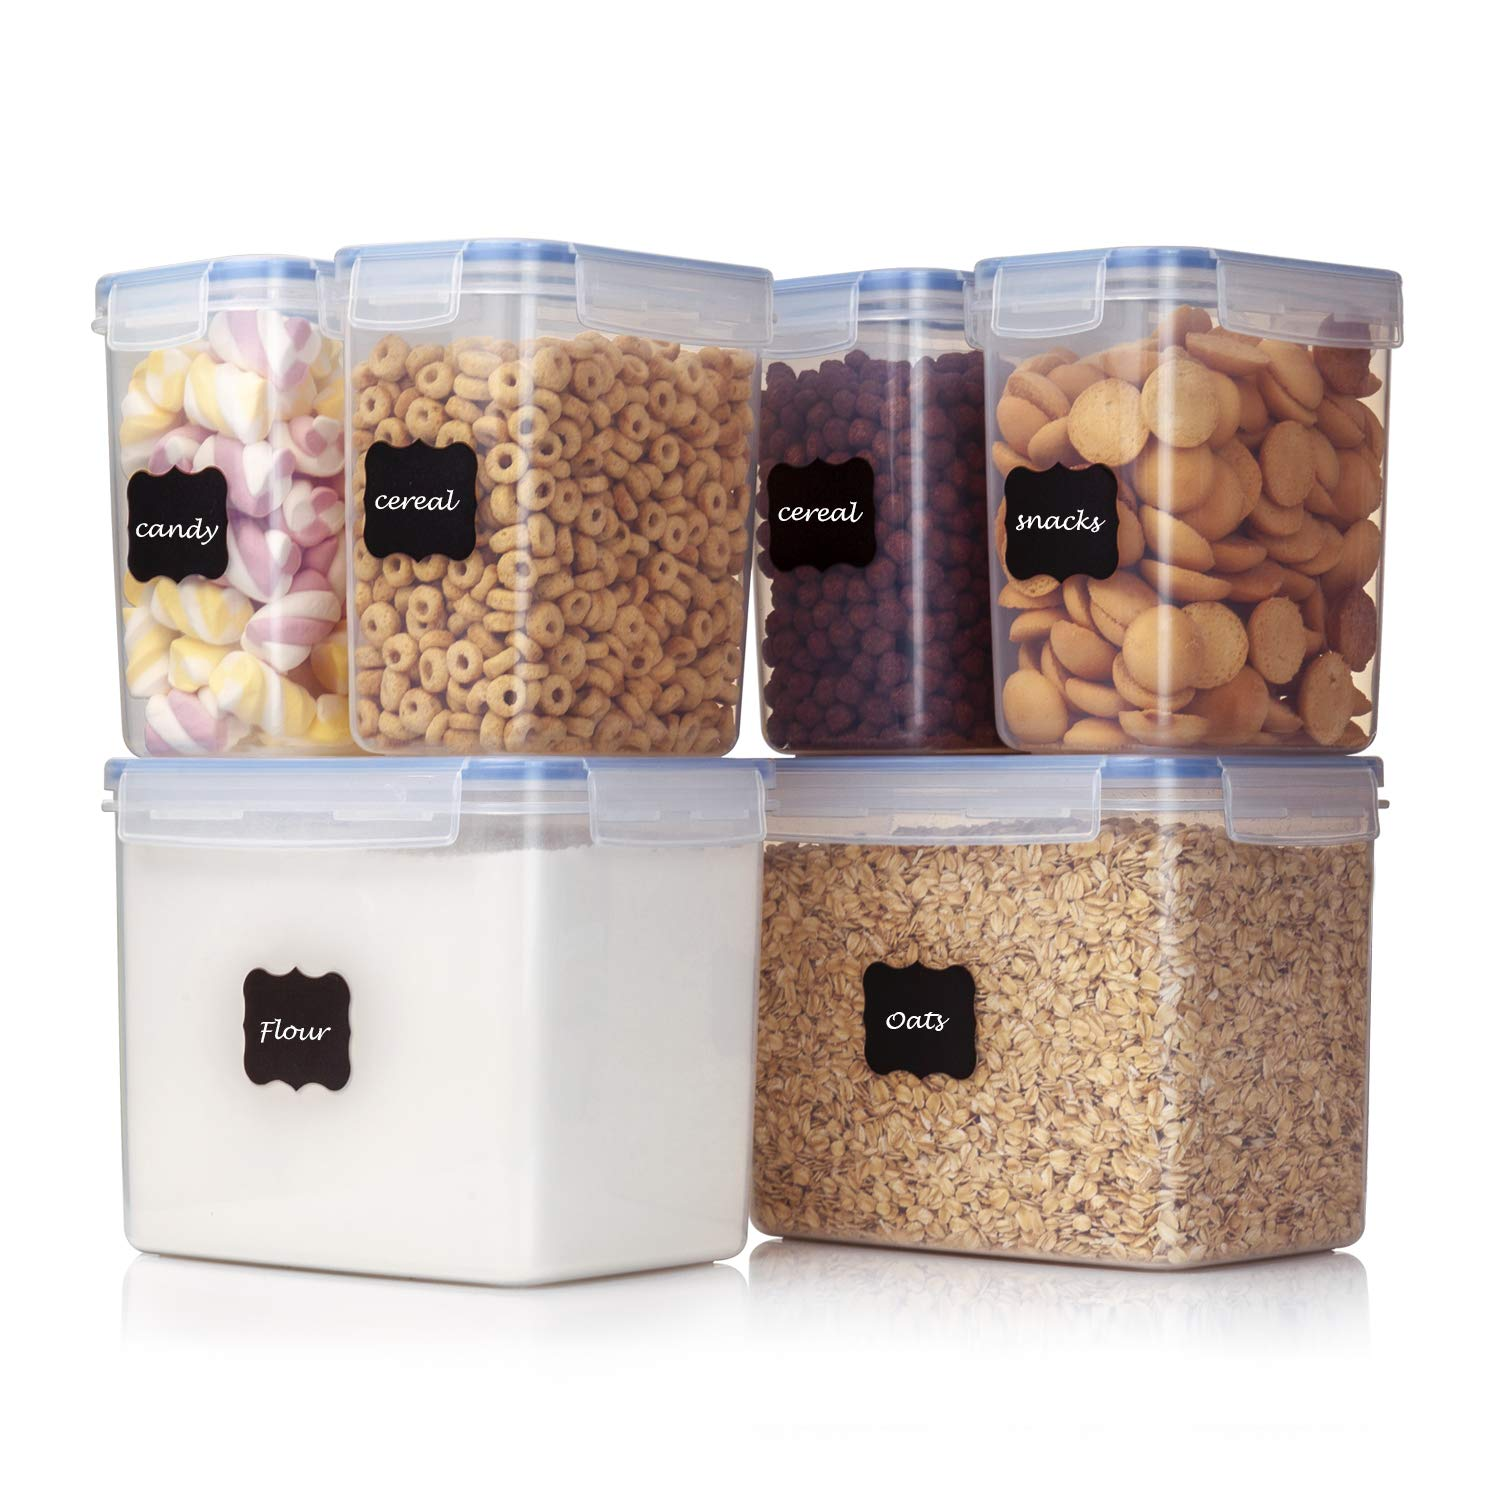 Vtopmart Airtight Food Storage Containers 6 Pieces - Plastic PBA Free Kitchen Pantry Storage Containers for Sugar,Flour and Baking Supplies - Dishwasher Safe - 24 Free Labels and 1 Marker by Vtopmart